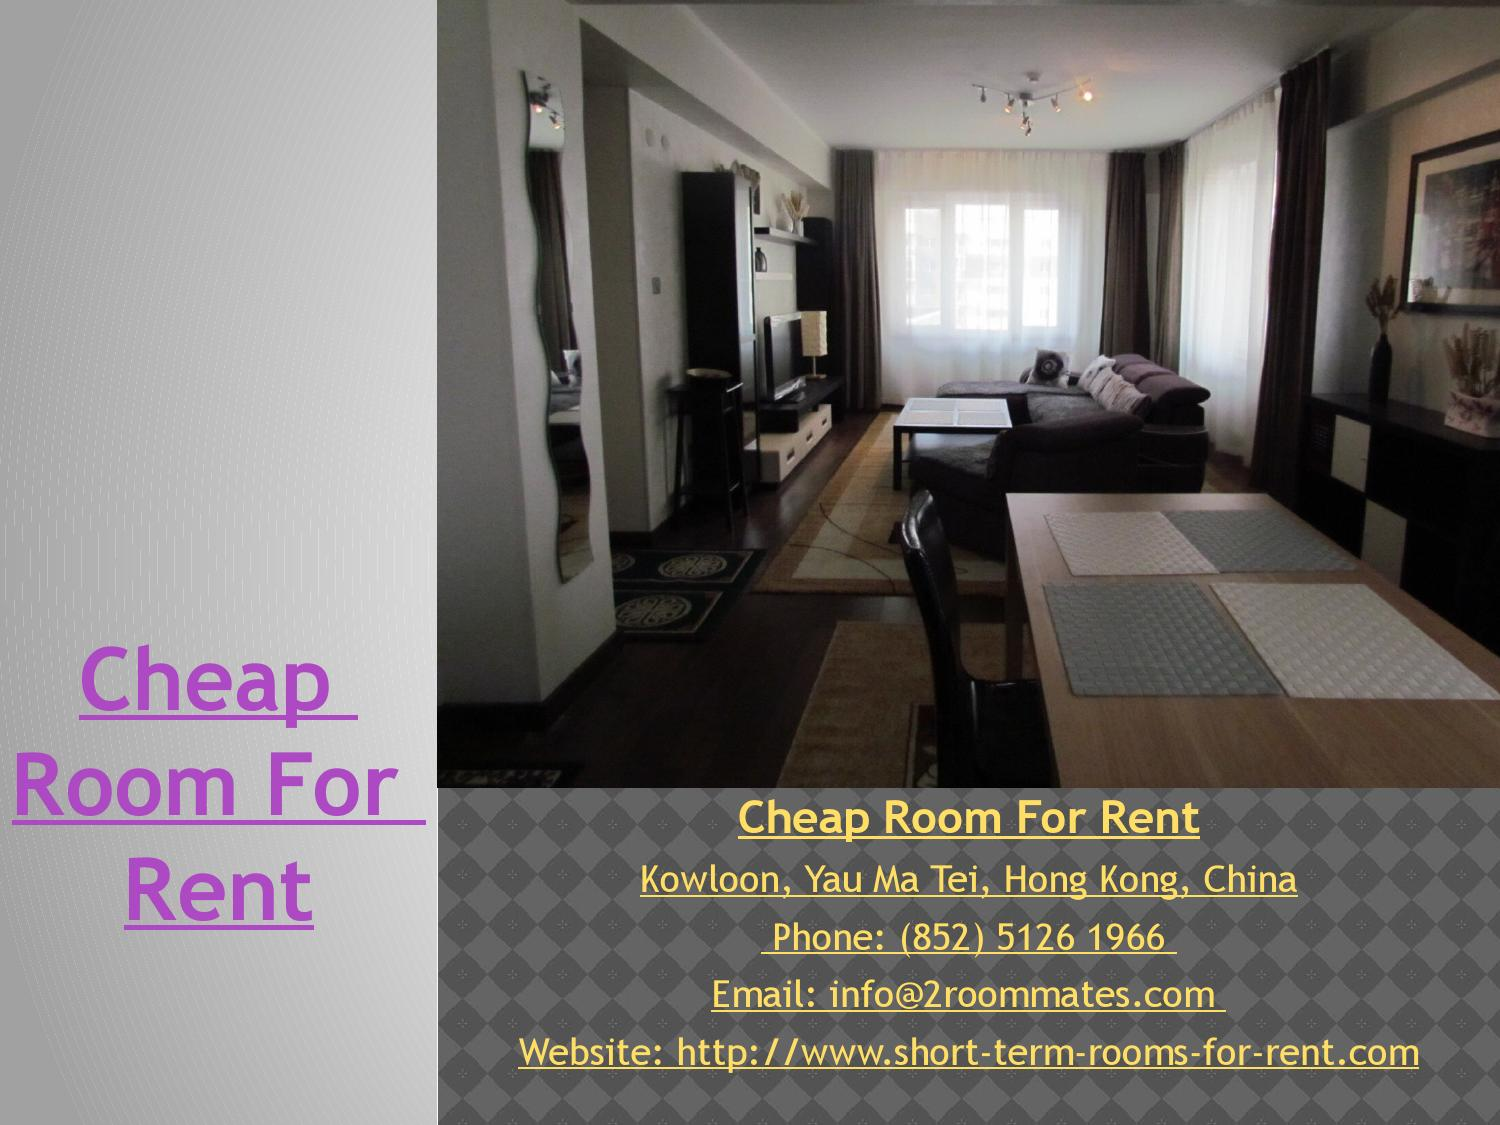 Cheap Room For Rent 2 By Cheap Room For Rent Issuu